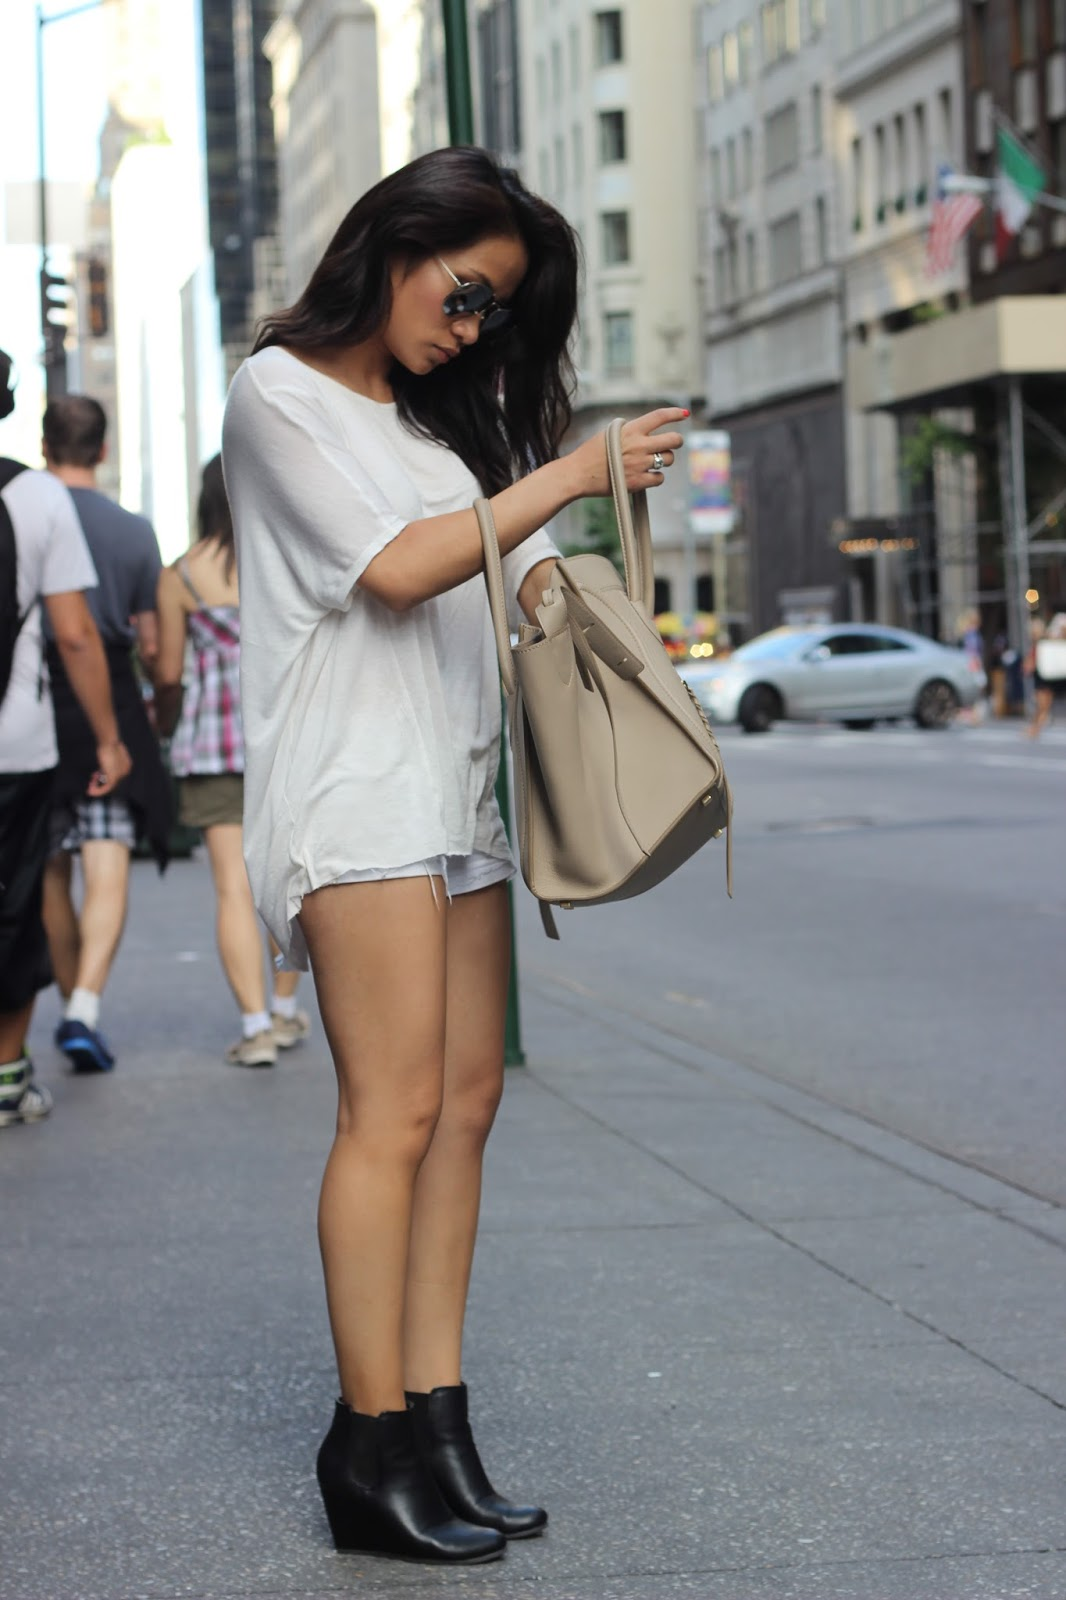 taupe celine phantom bag, new york city, melba nguyen, sole trekking, stuart weitzman, celine phantom